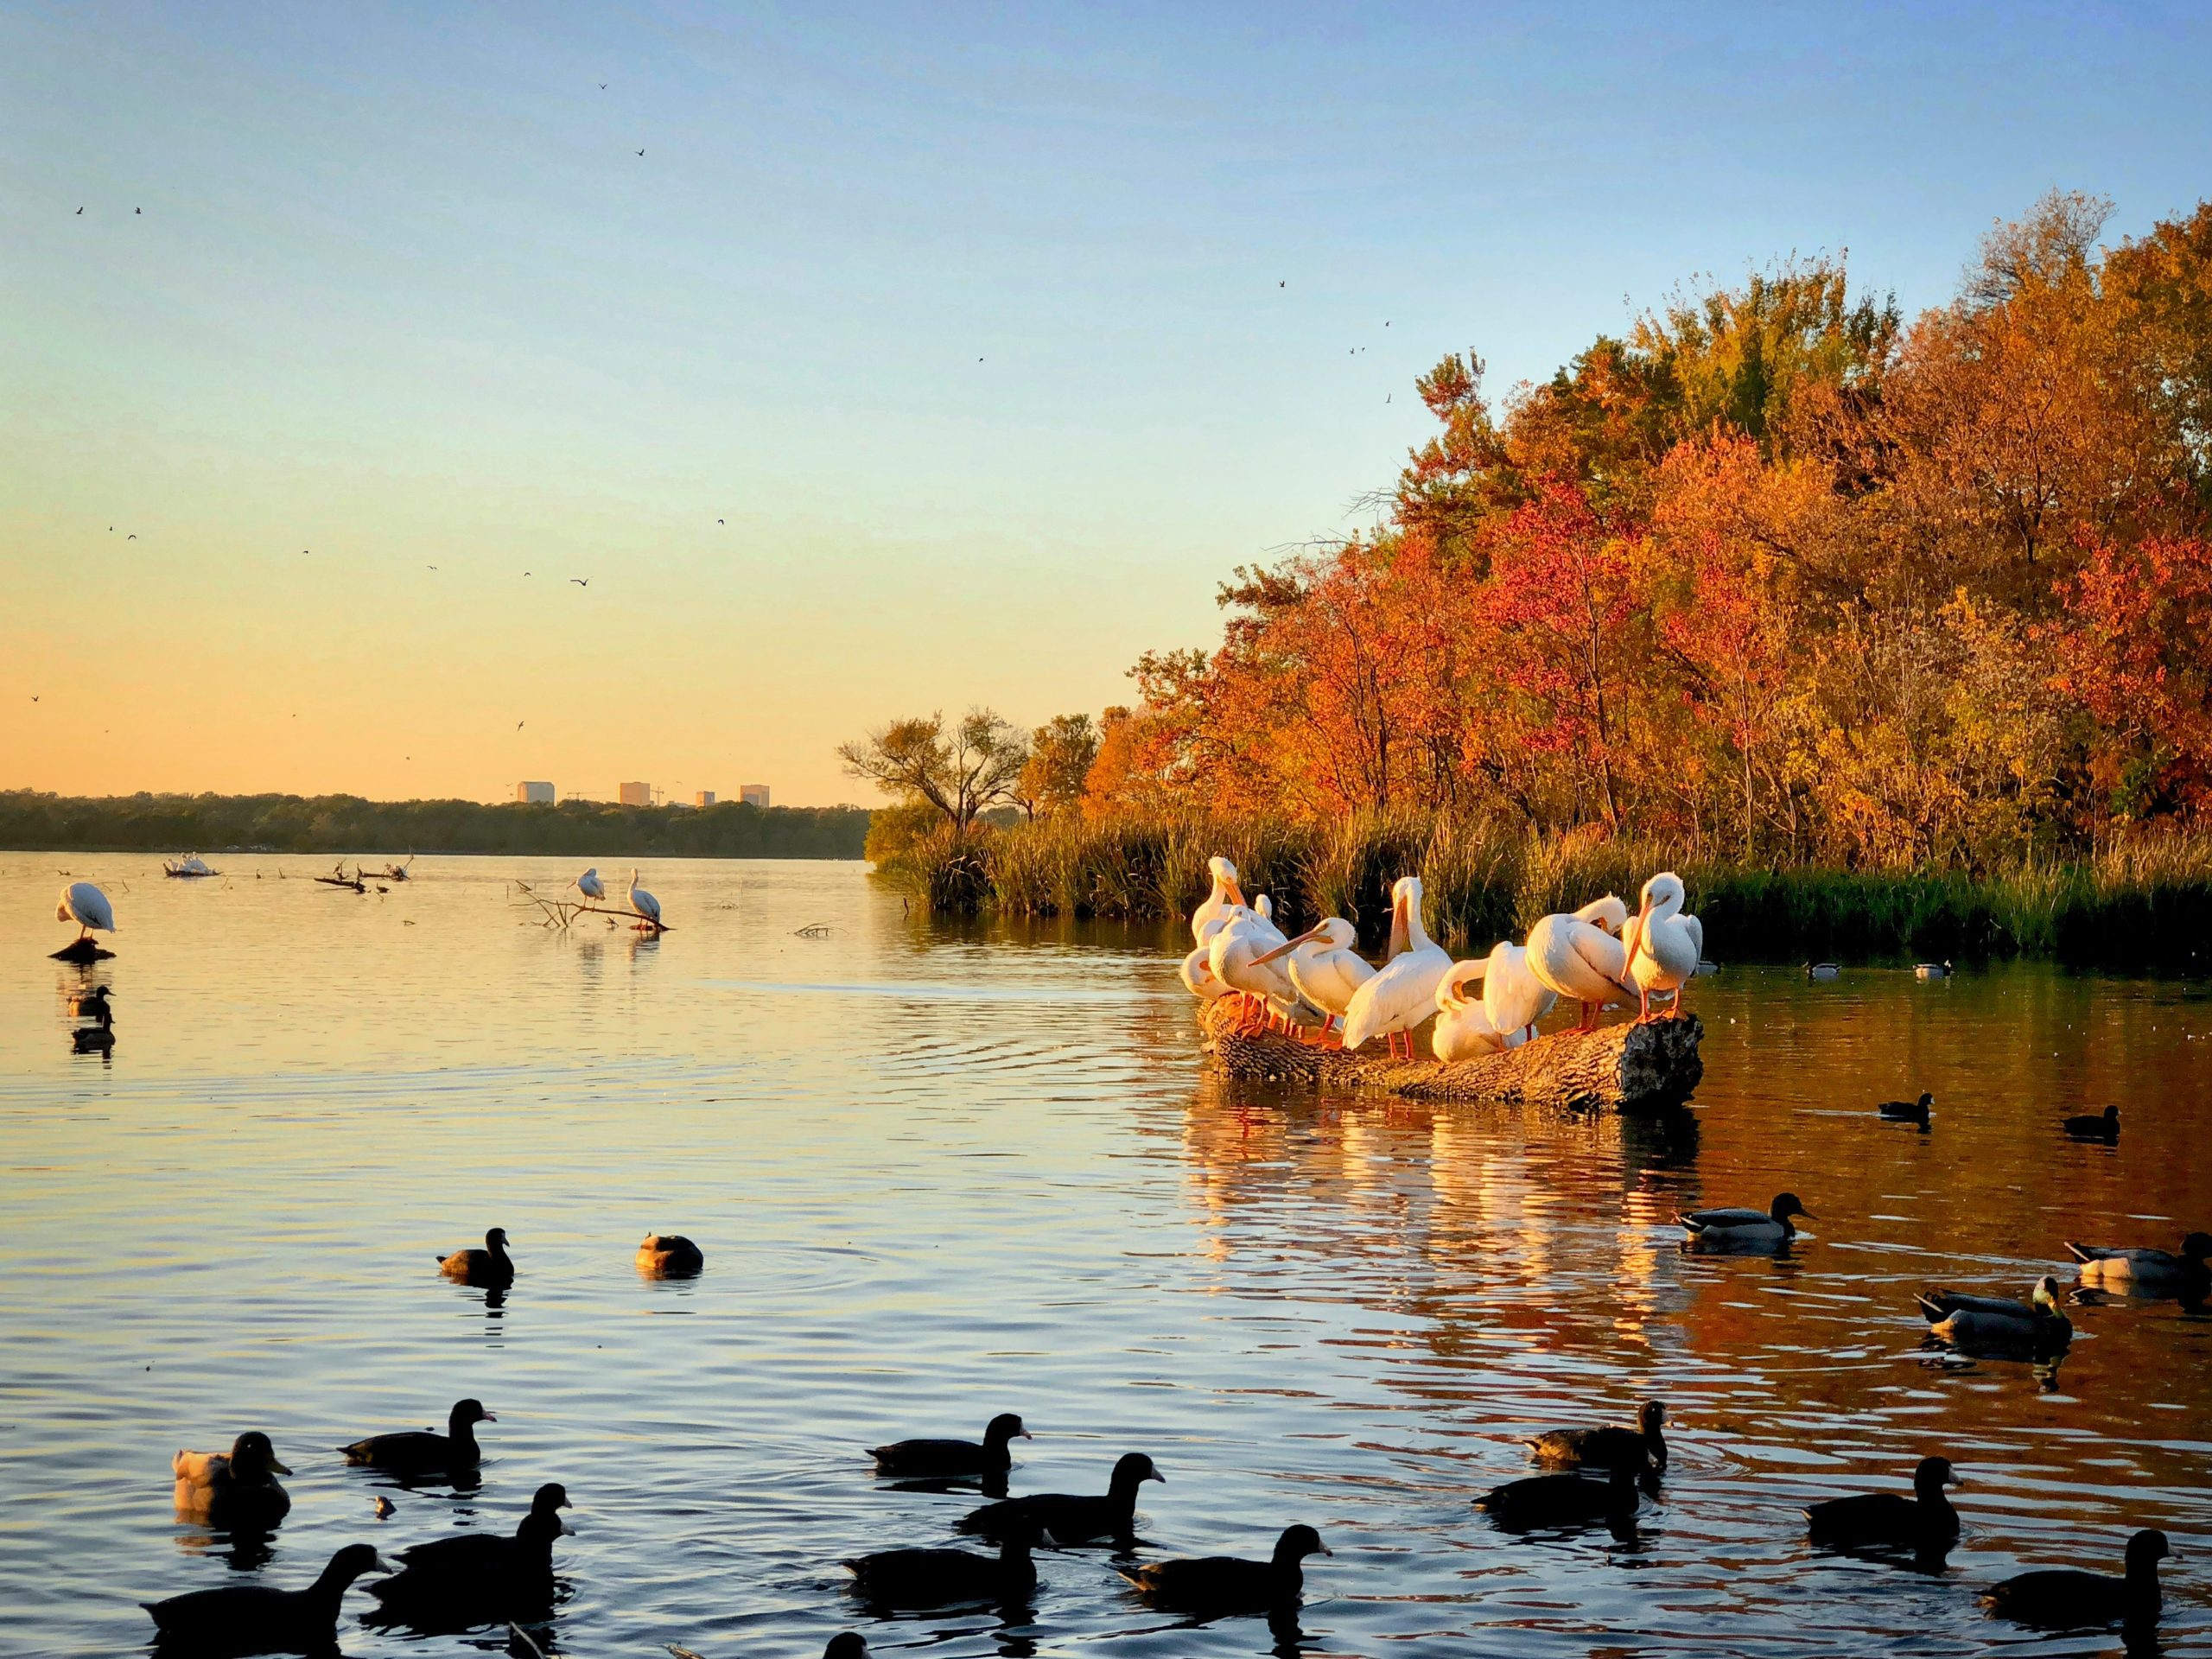 Pelicans and Ducks at White Rock Lake